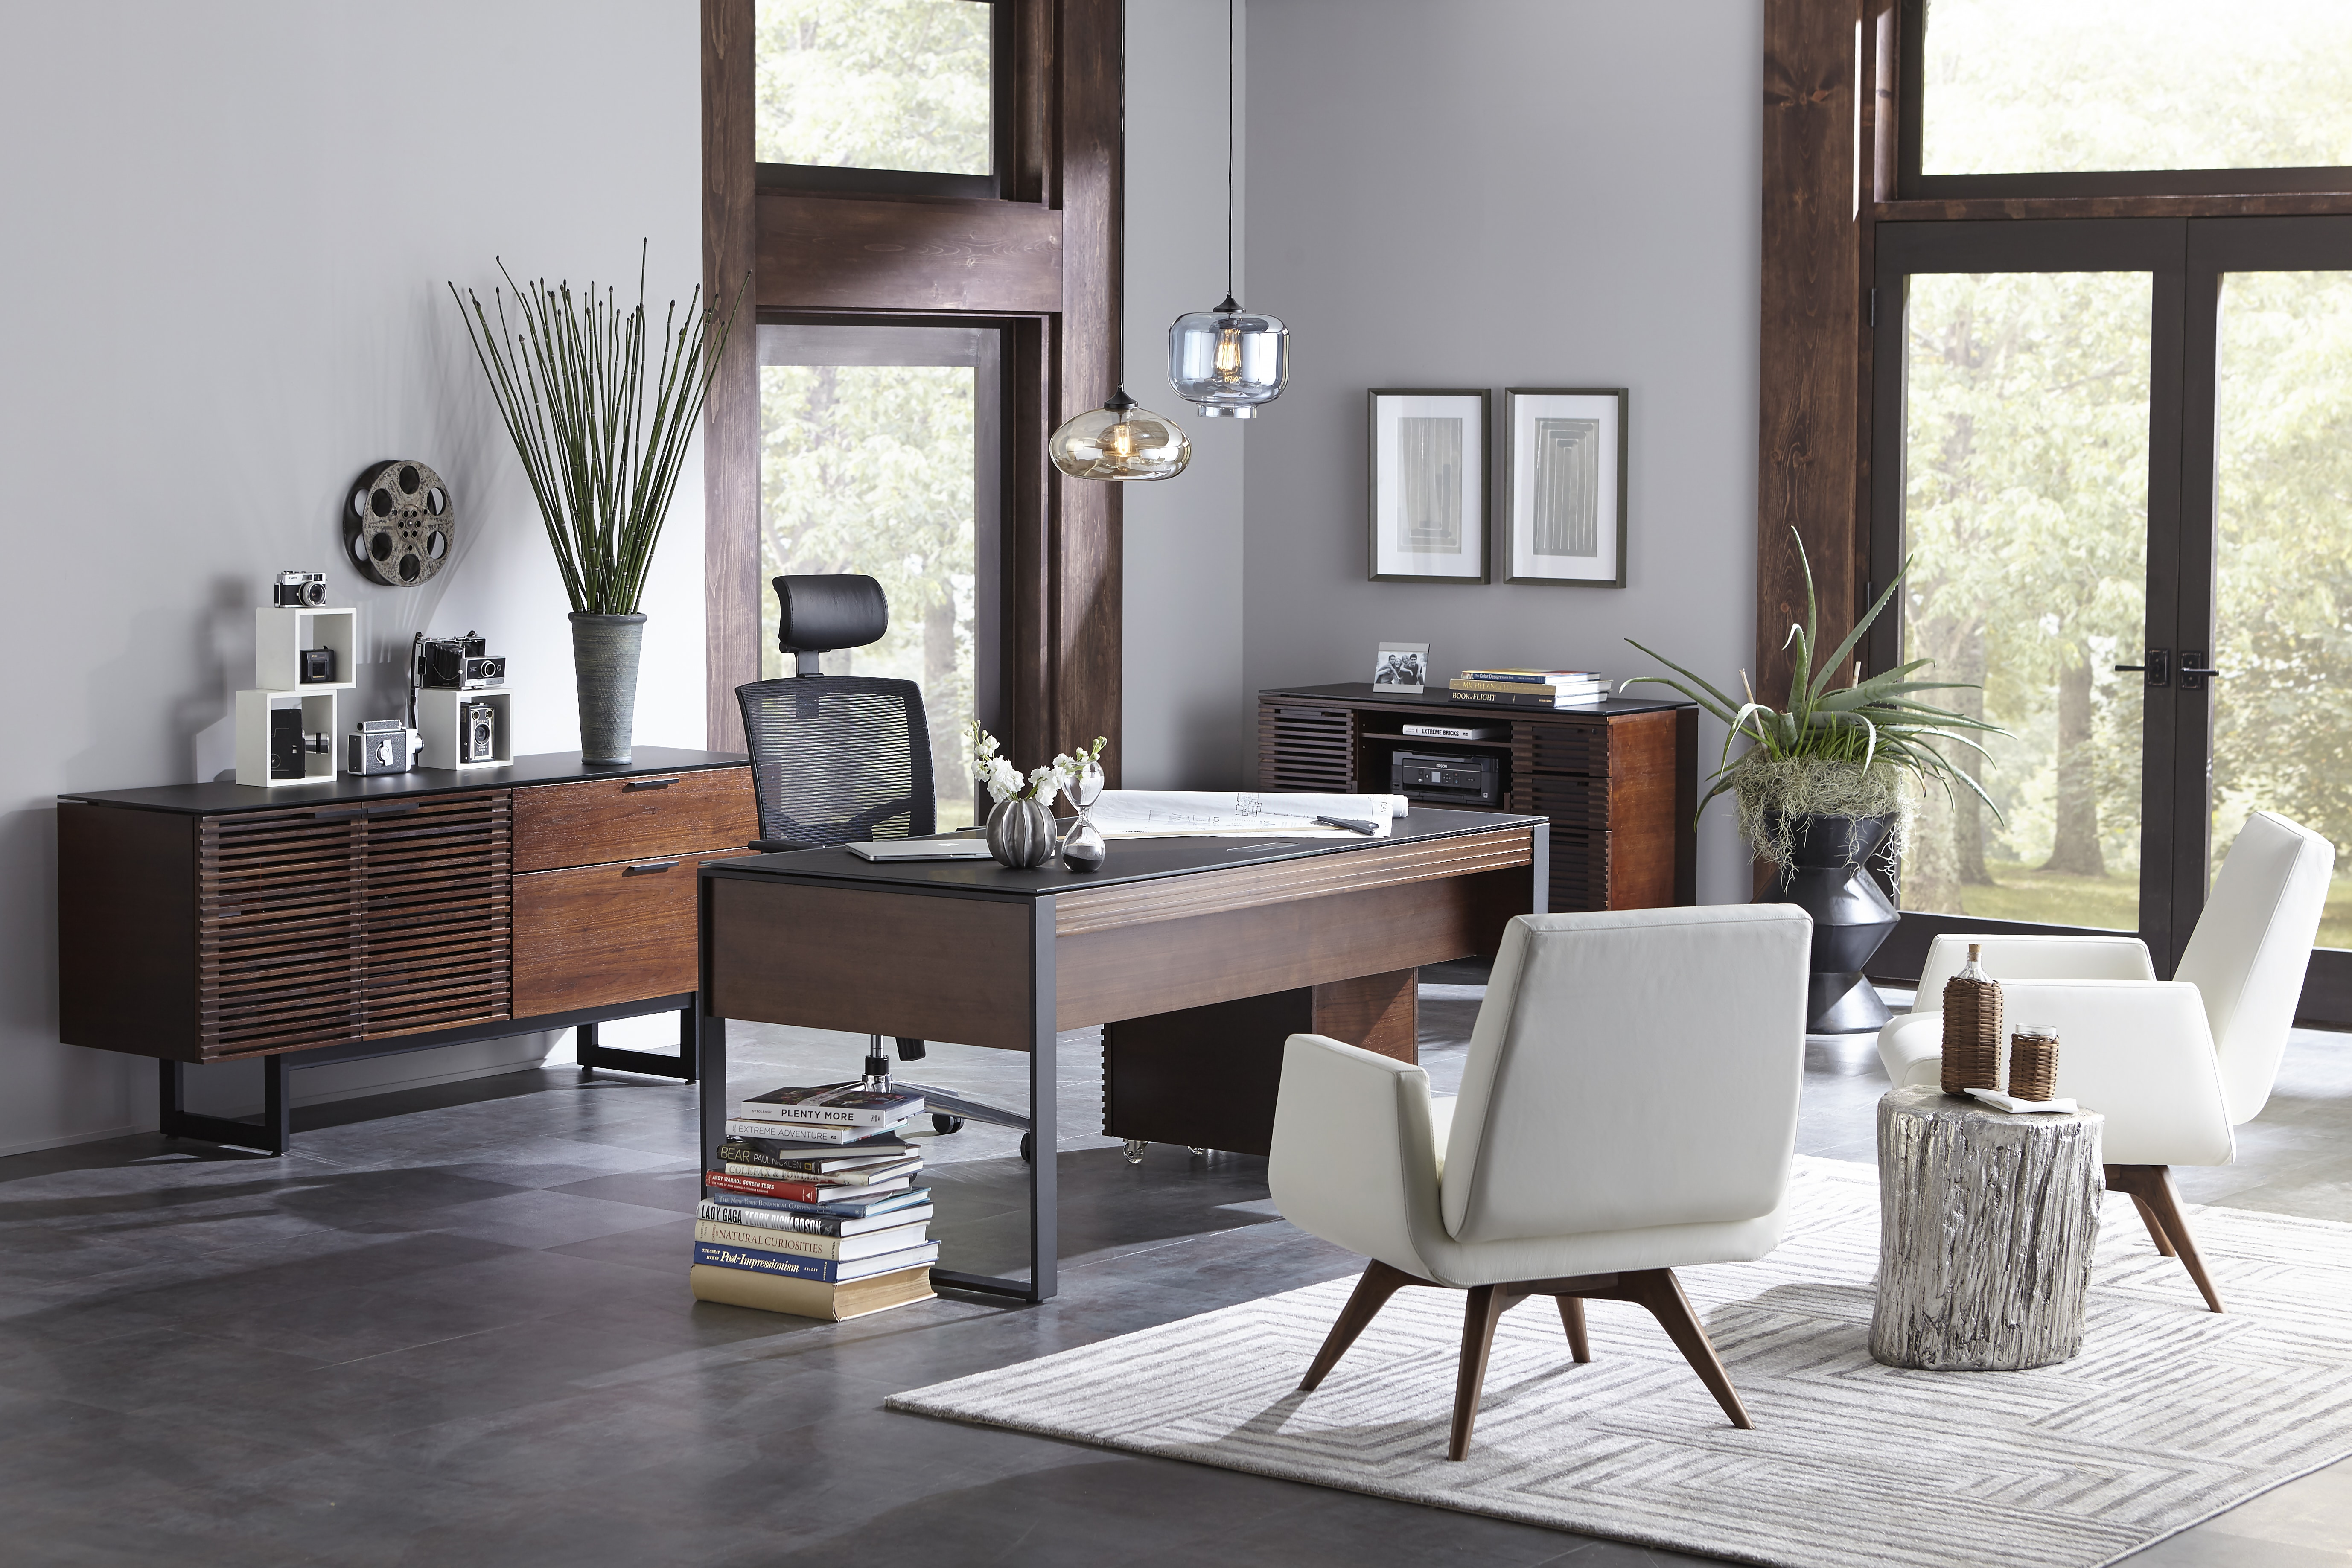 bright what business furniture centro incubator outlet design com cupboard narrow apartment in energy desk industrial is launches sequel technology usa bdi tech executive office view corridor